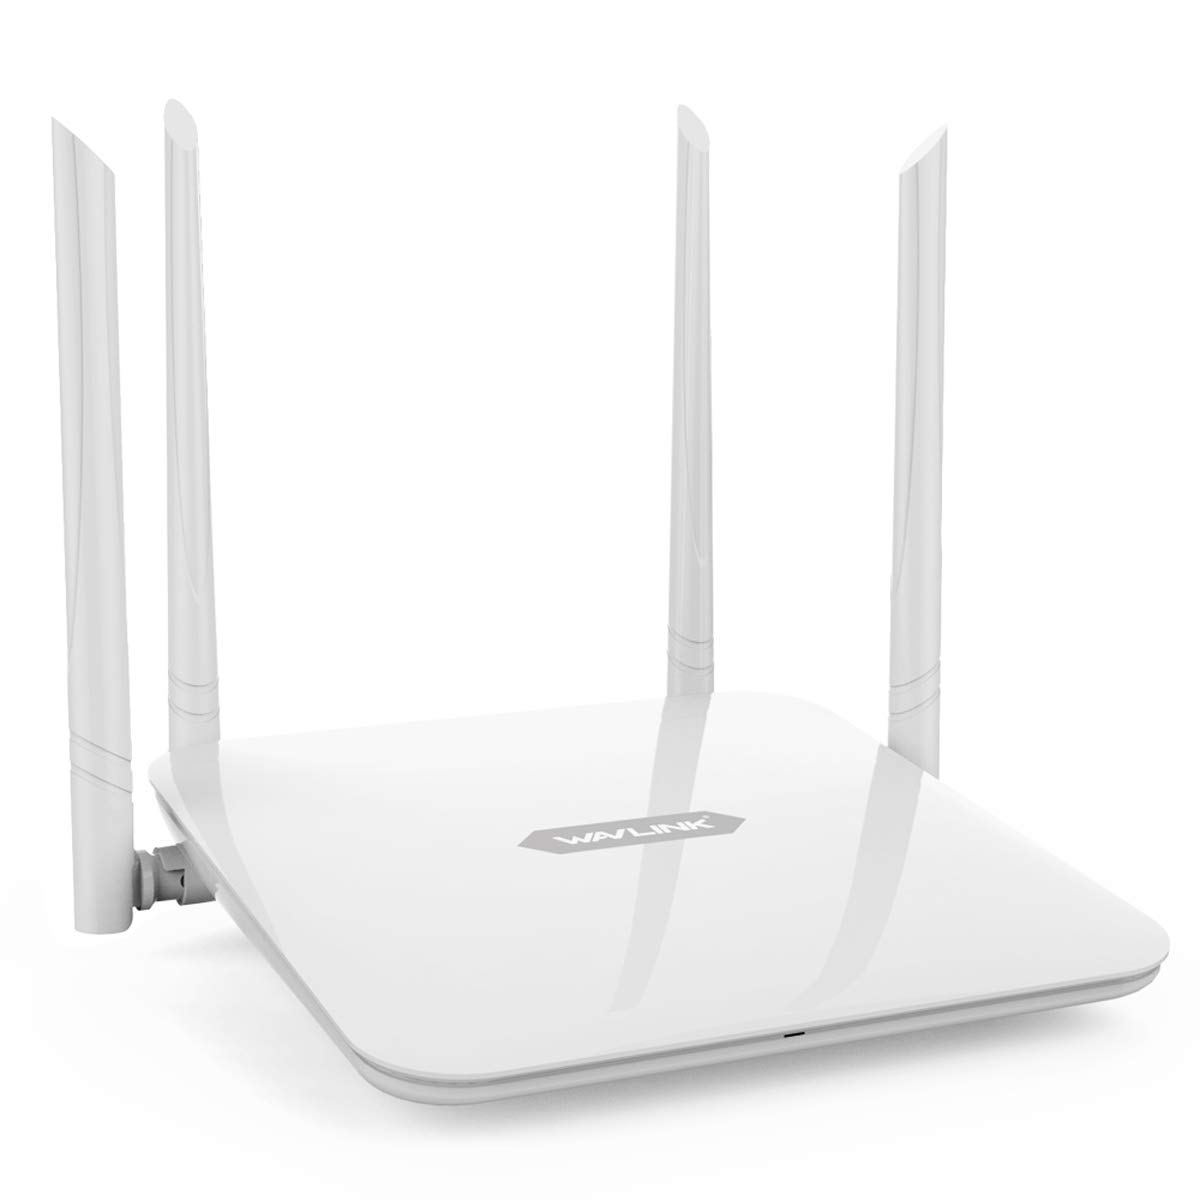 WAVLINK WiFi Router/High Speed WiFi Range Extender/Coverage Up to 1200Mbps with 5GHz Gigabit Dual Band Wireless Internet Router by WAVLINK